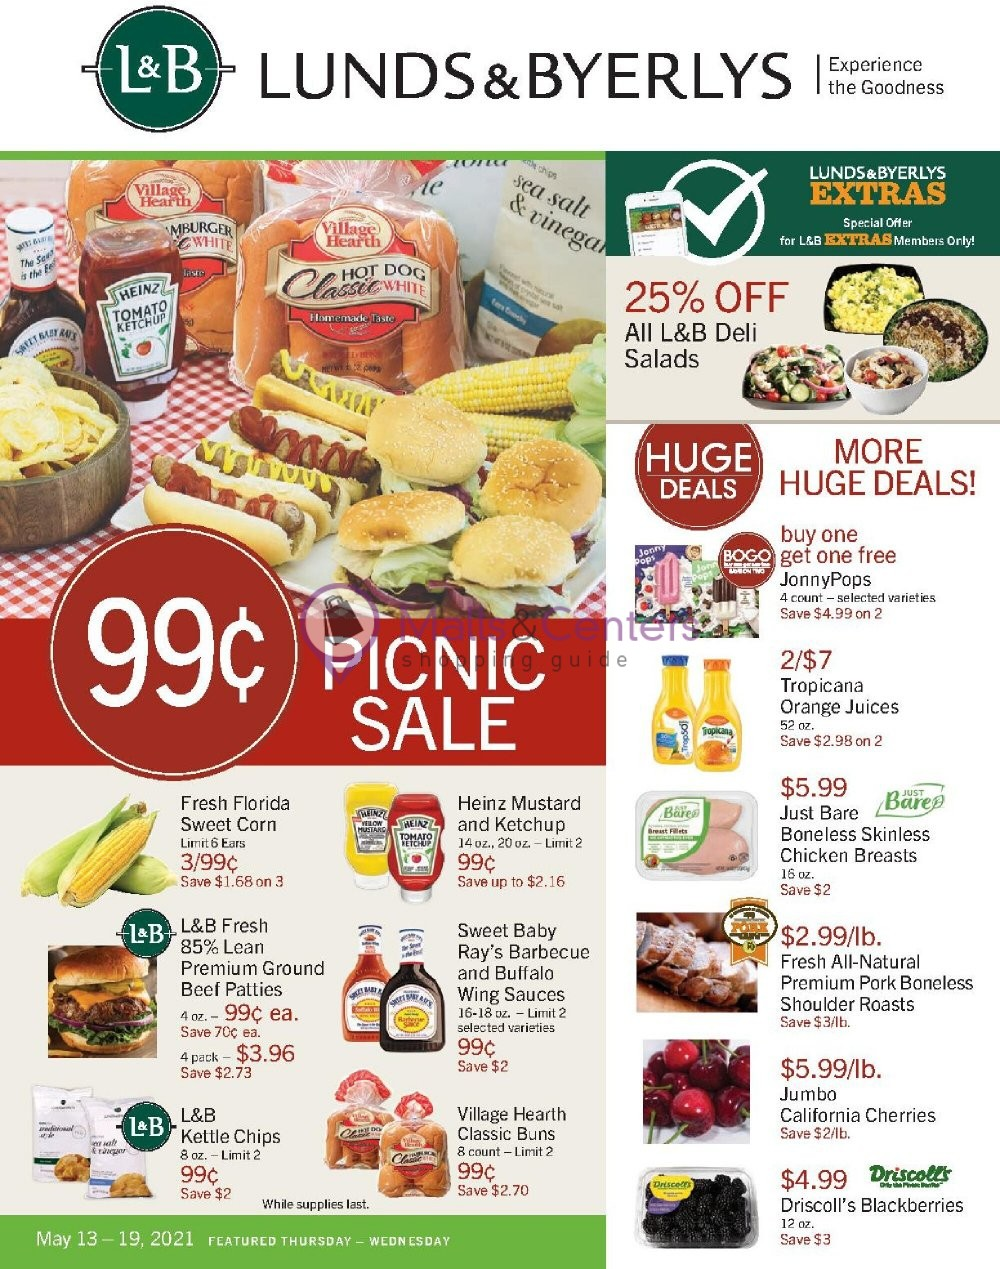 weekly ads Lunds & Byerlys - page 1 - mallscenters.com